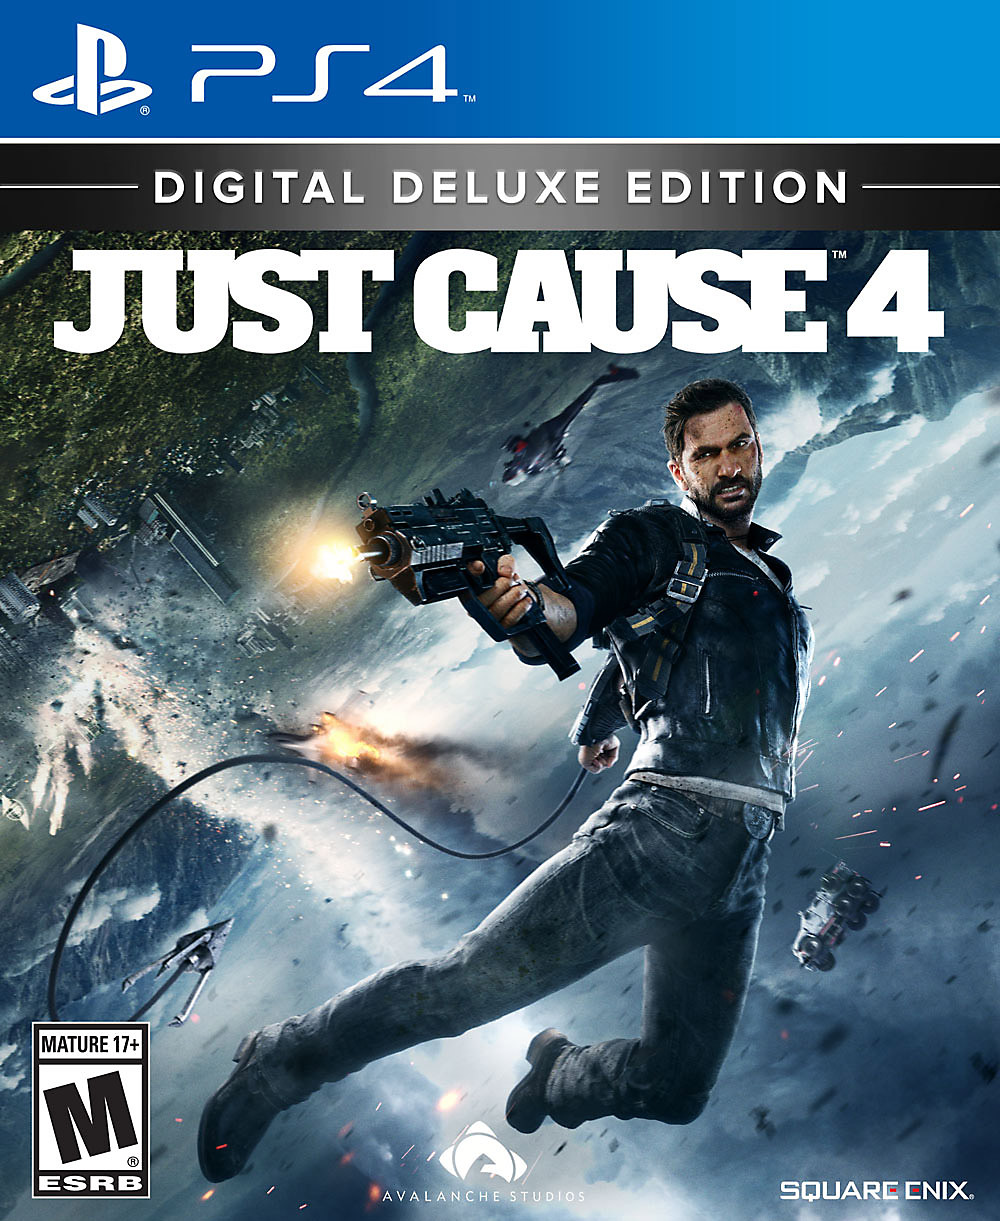 Just Cause 4 - Digital Deluxe Edition